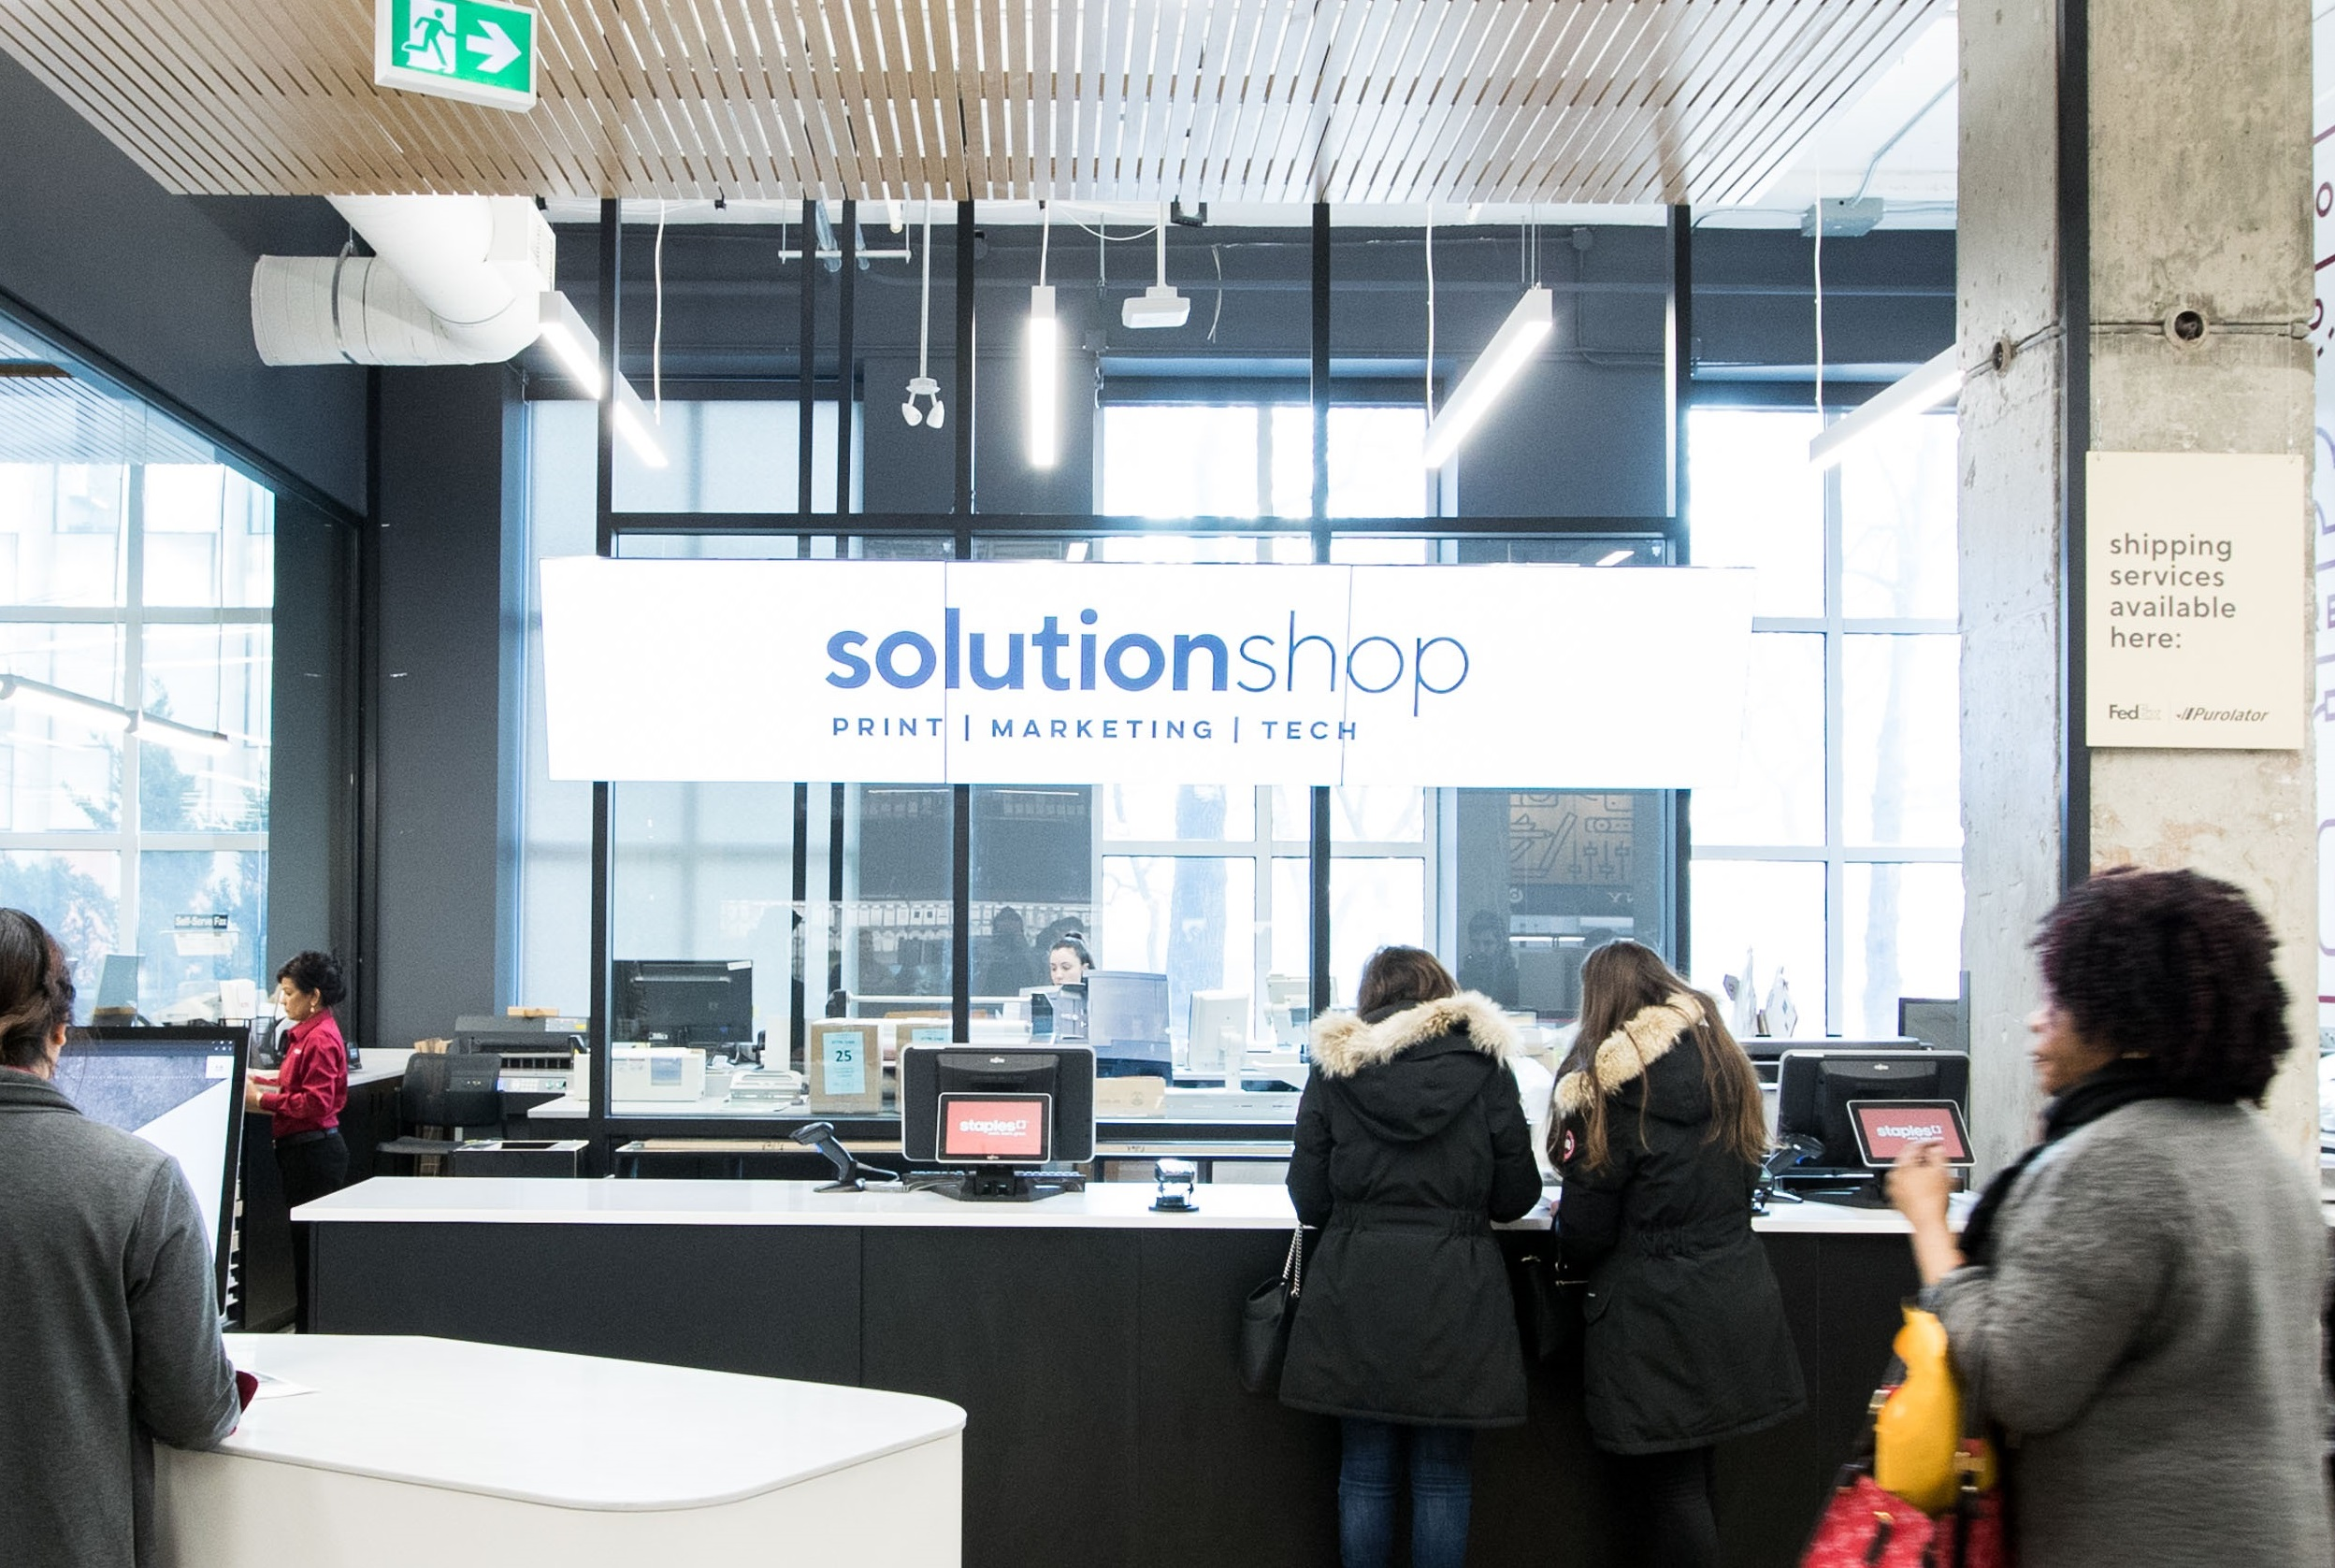 STAPLES' NEW SOLUTIONSHOP PHOTO: STAPLES